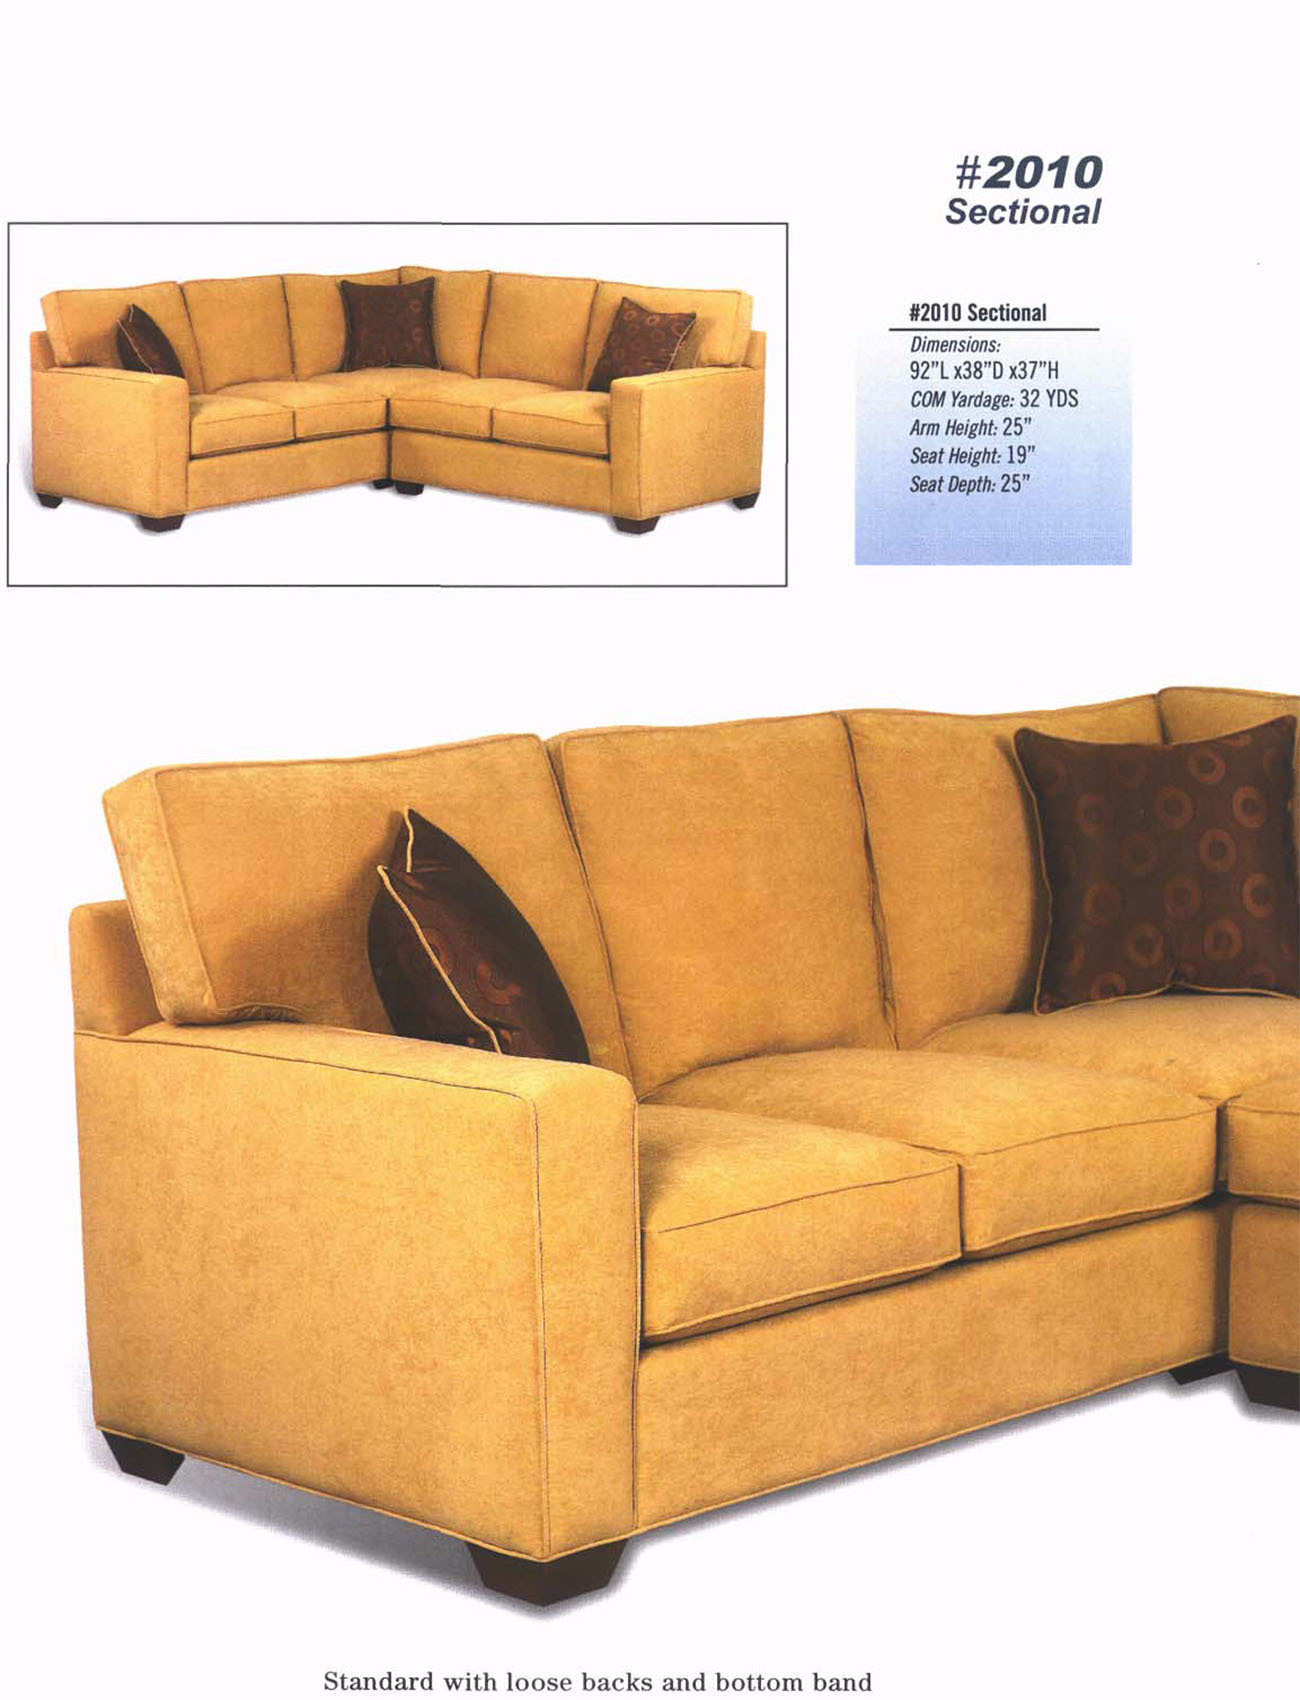 Style 2010 Sectional